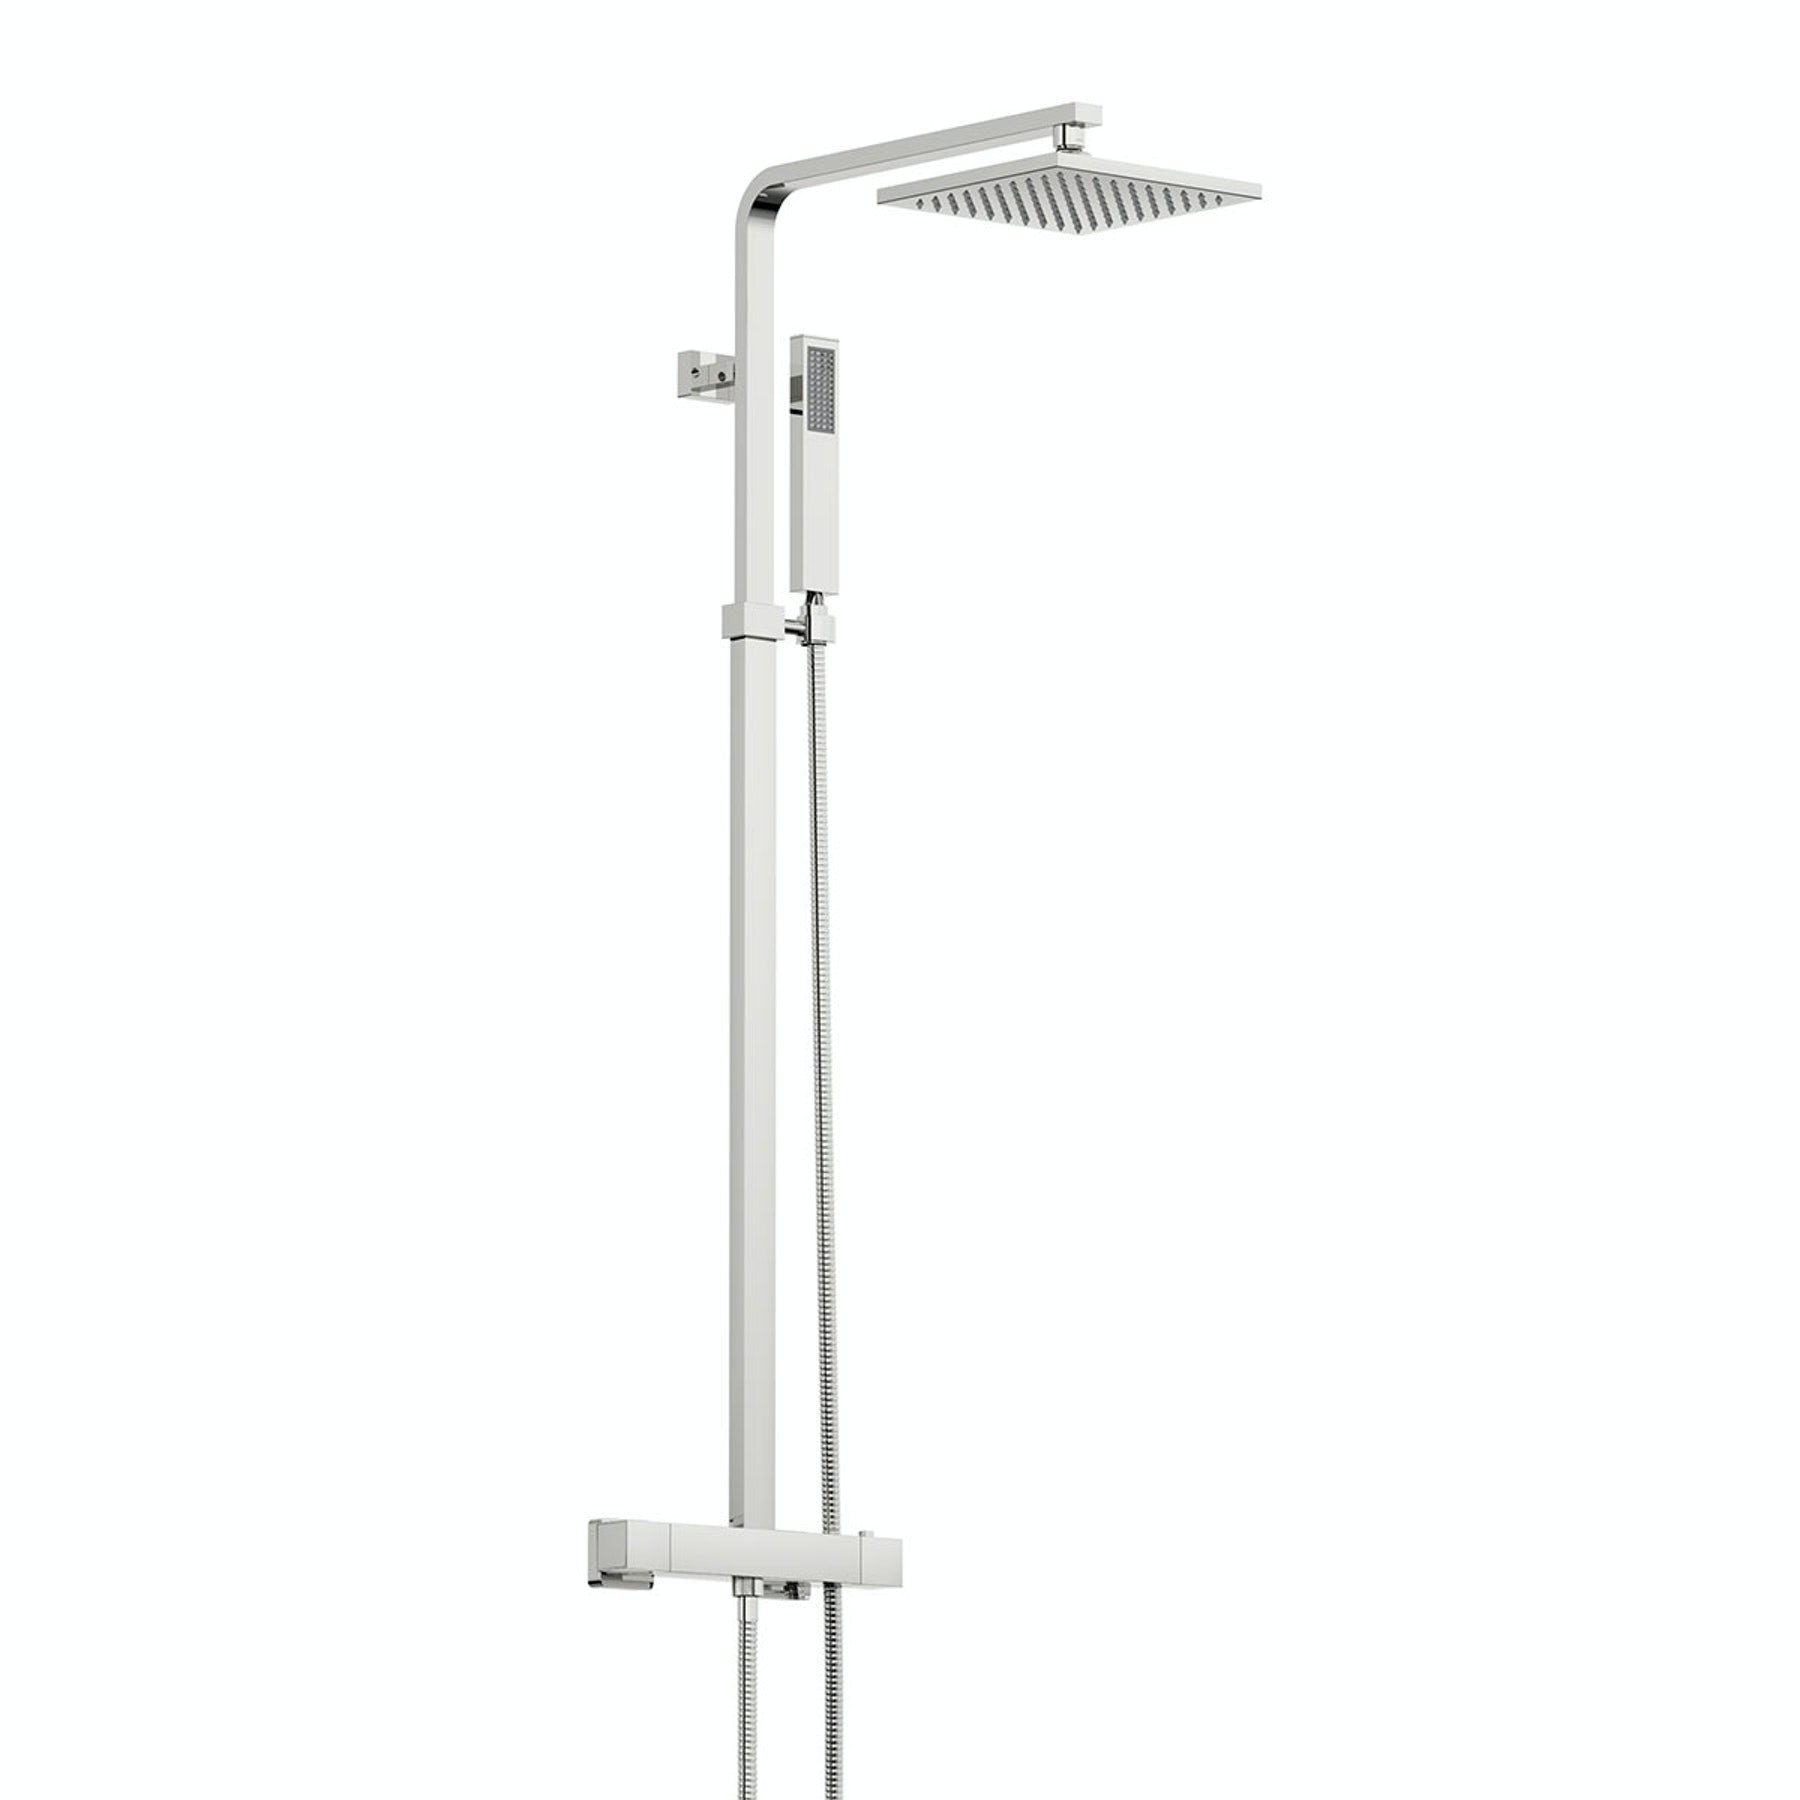 Orchard Cubik thermostatic bar valve shower system